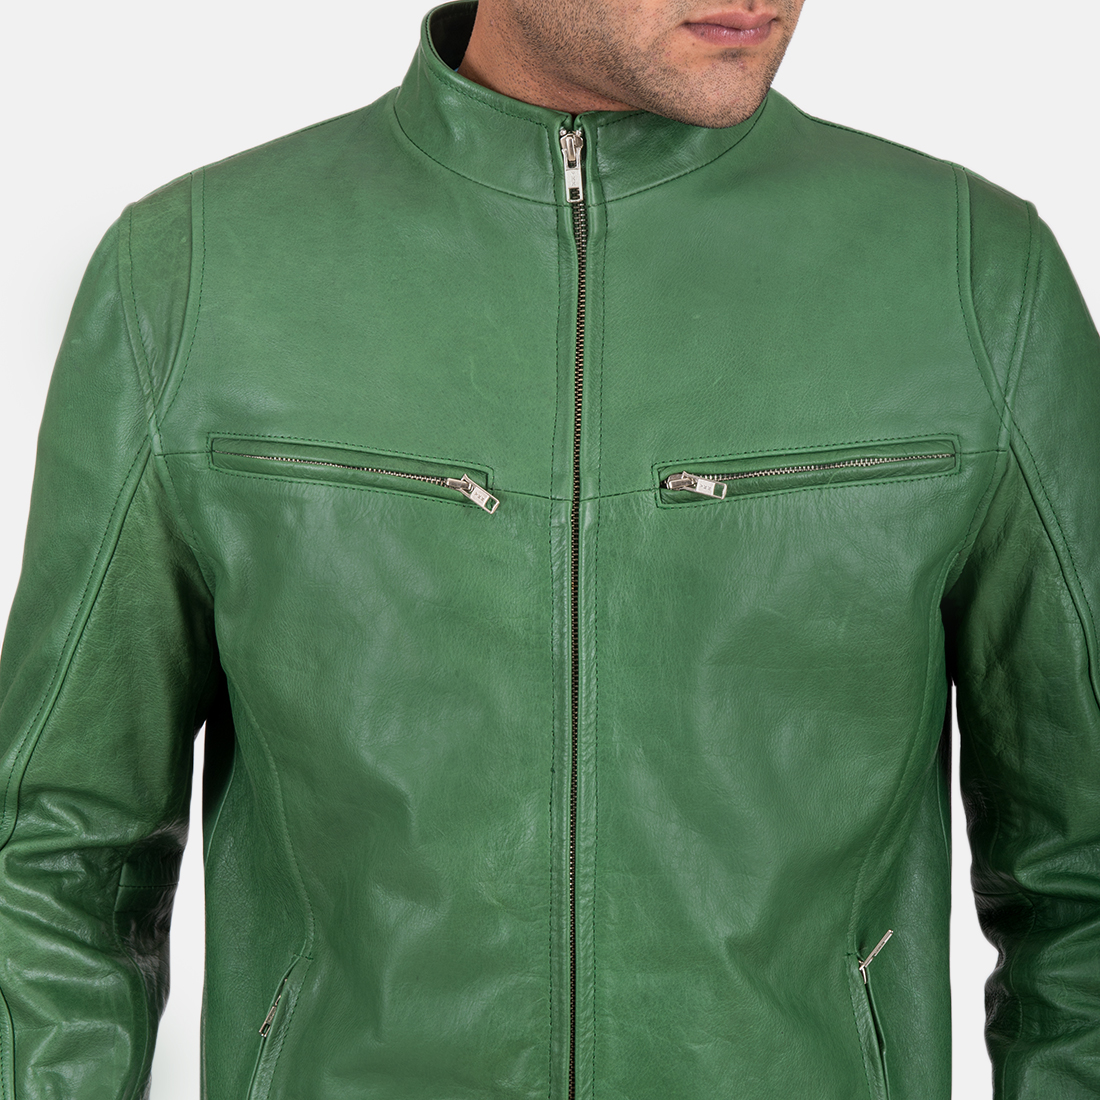 Mens Ionic Green Leather Jacket 4